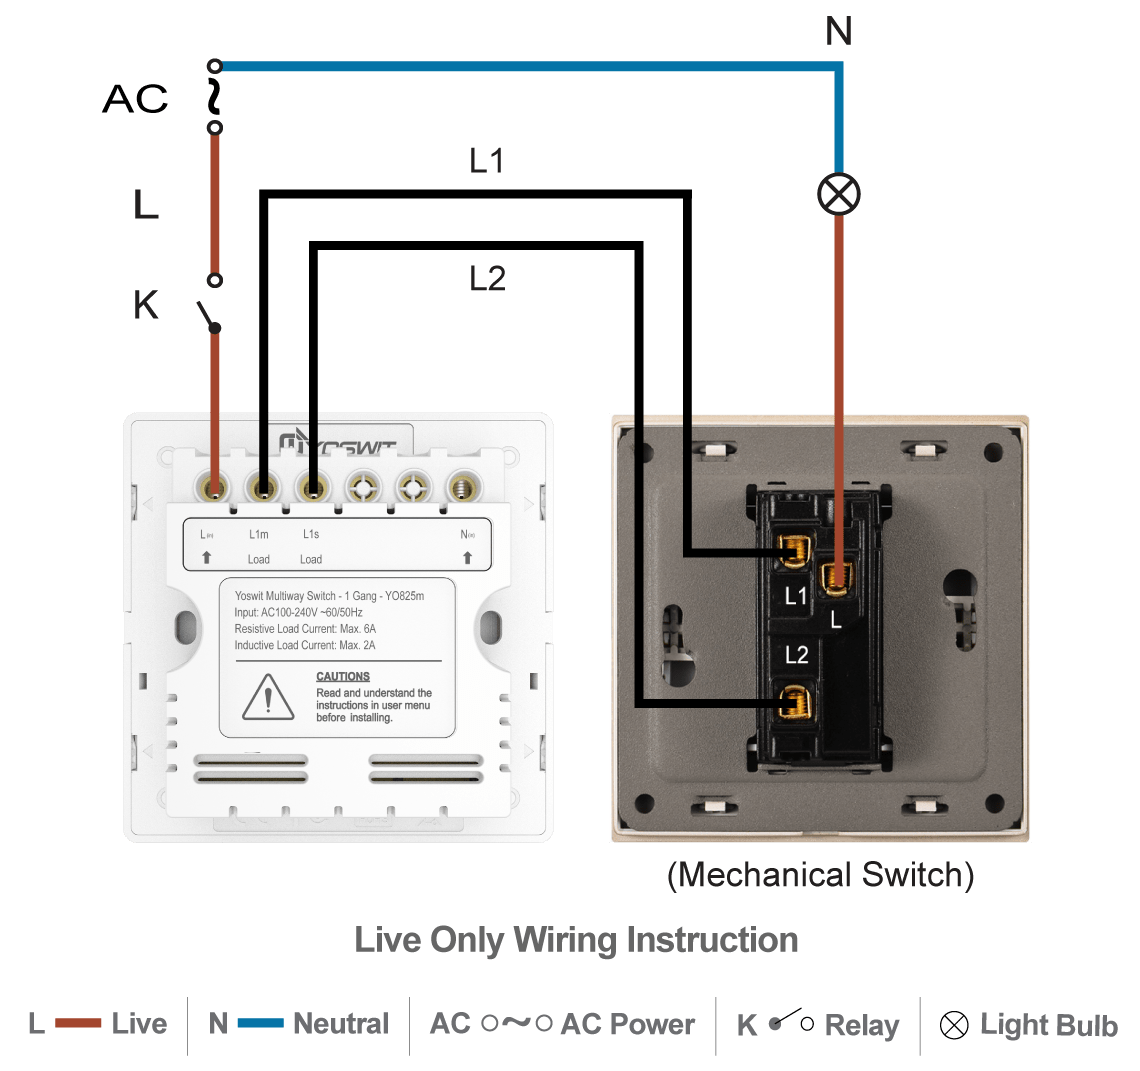 hight resolution of option 1 connect yoswit 3 way switch with common 3 way switch 2 wire without neutral wire